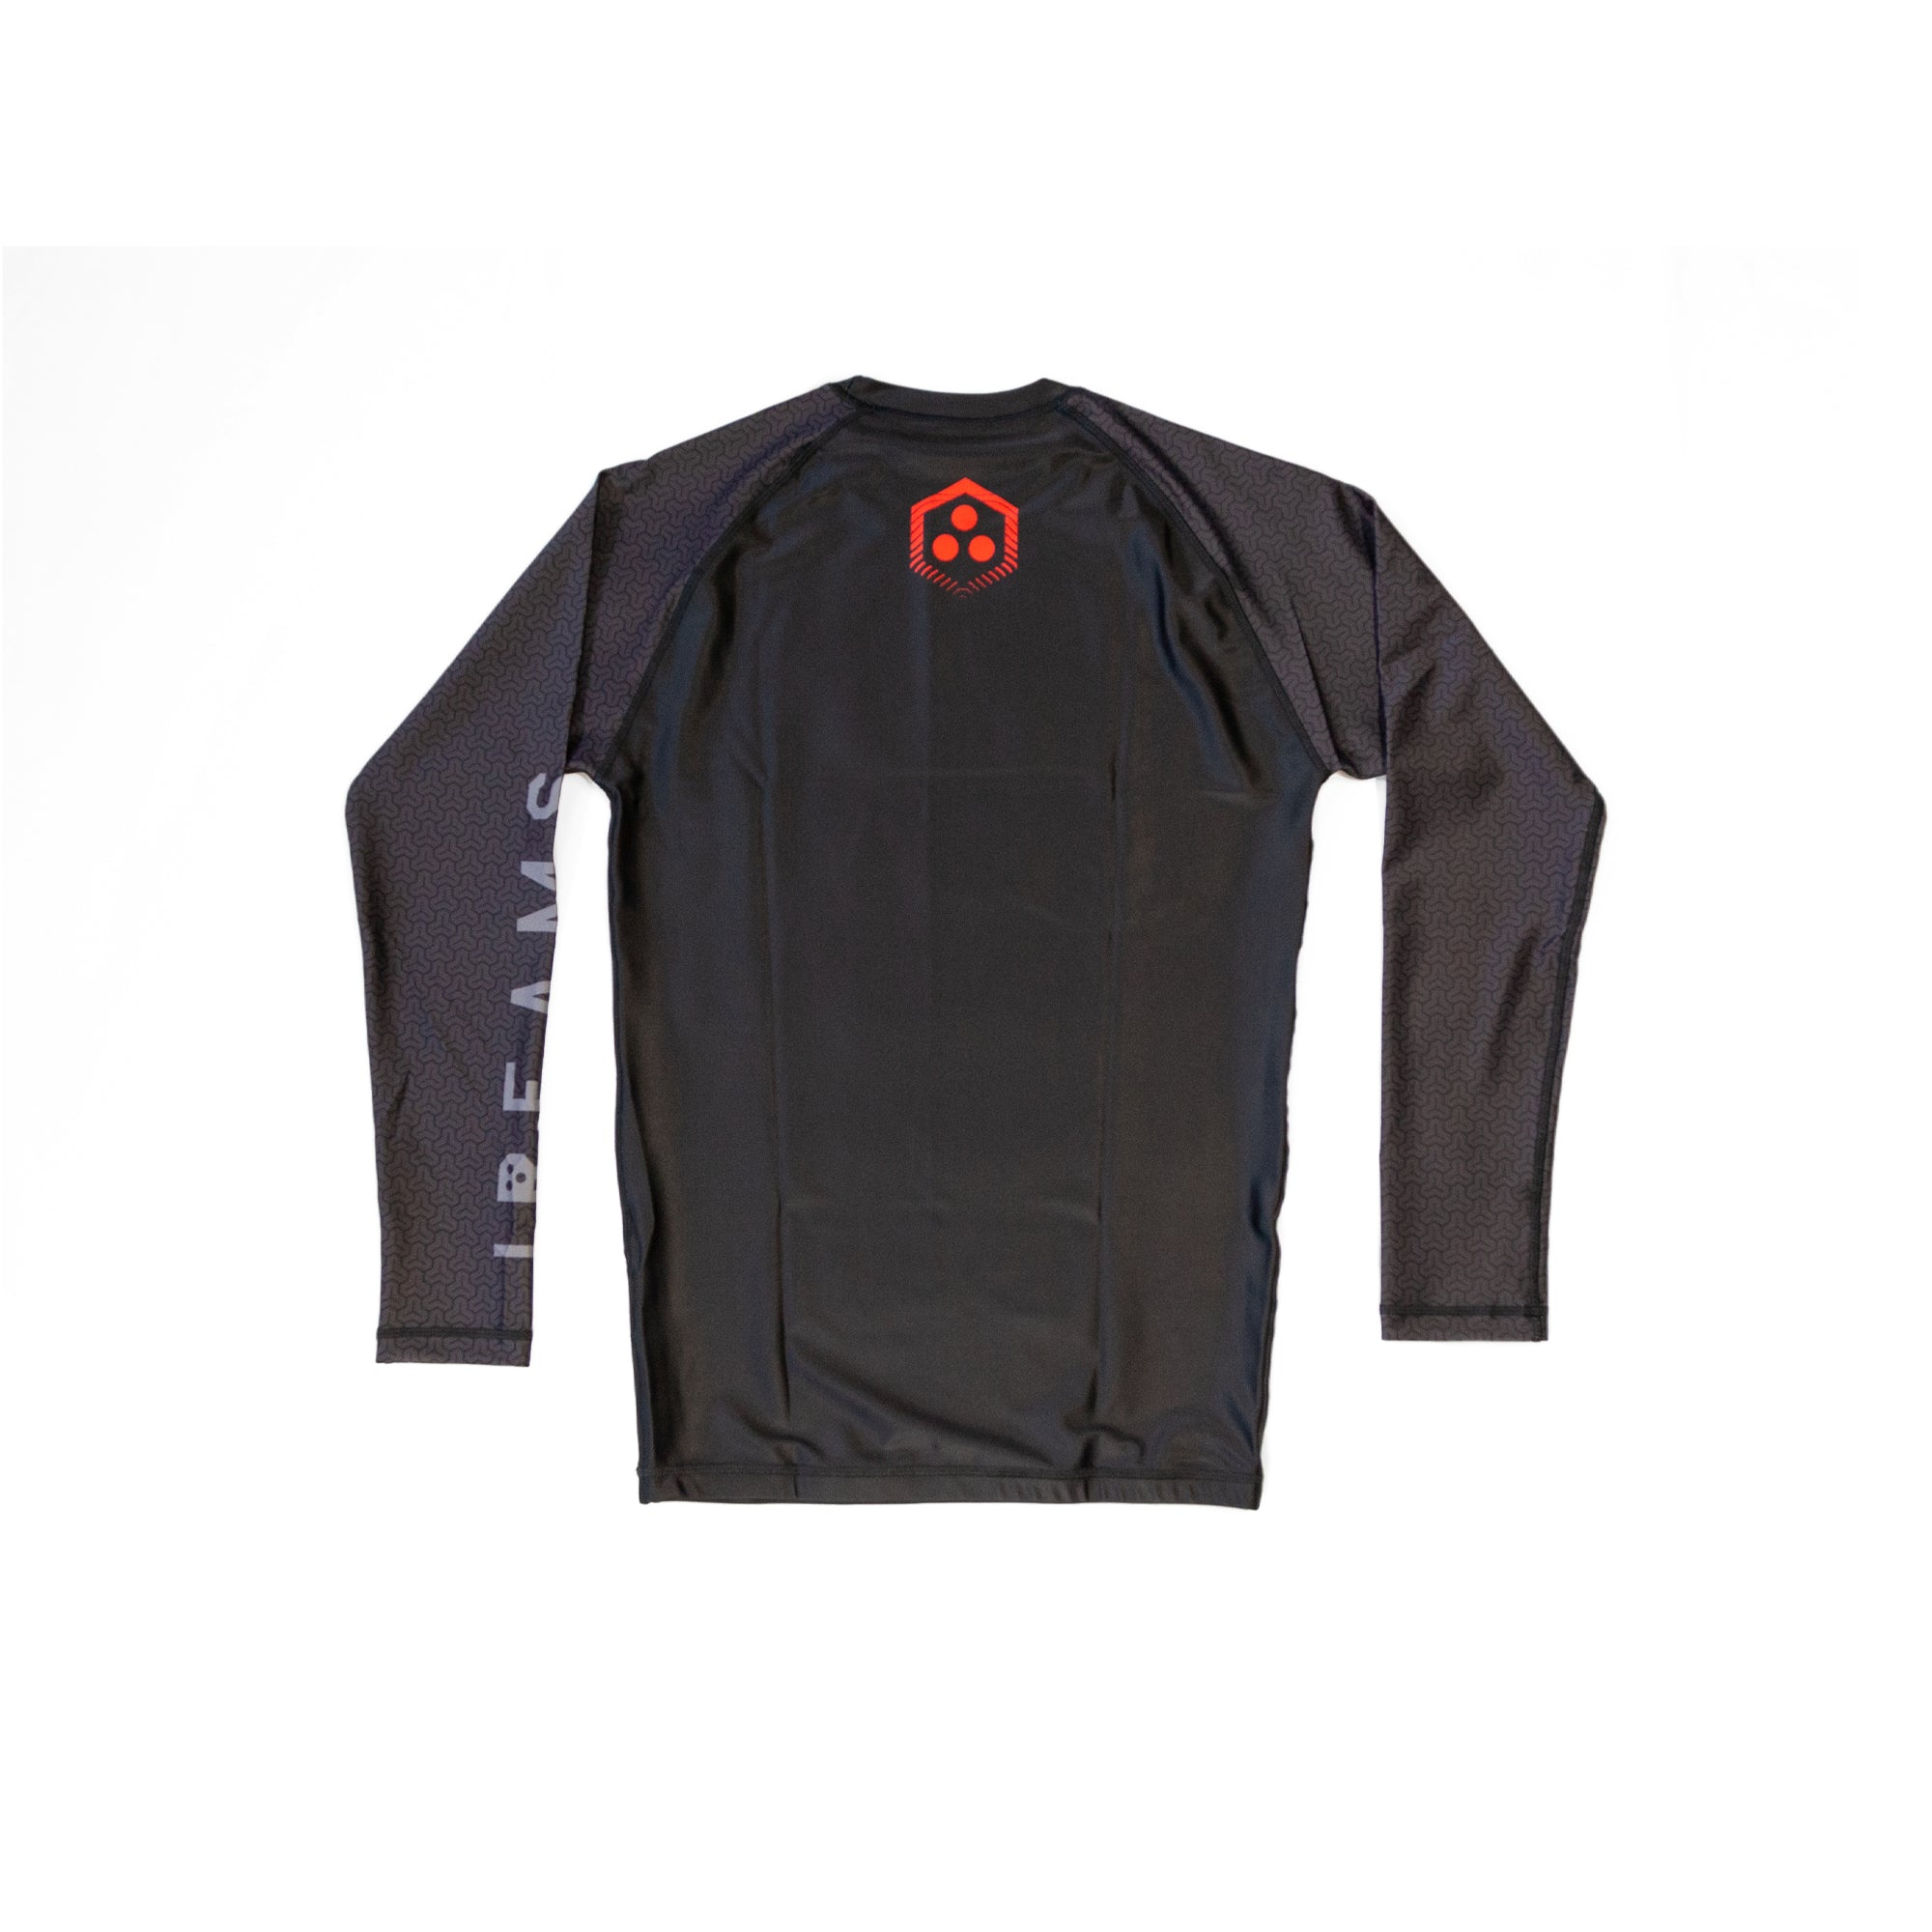 Issue: 01 Rash Guard